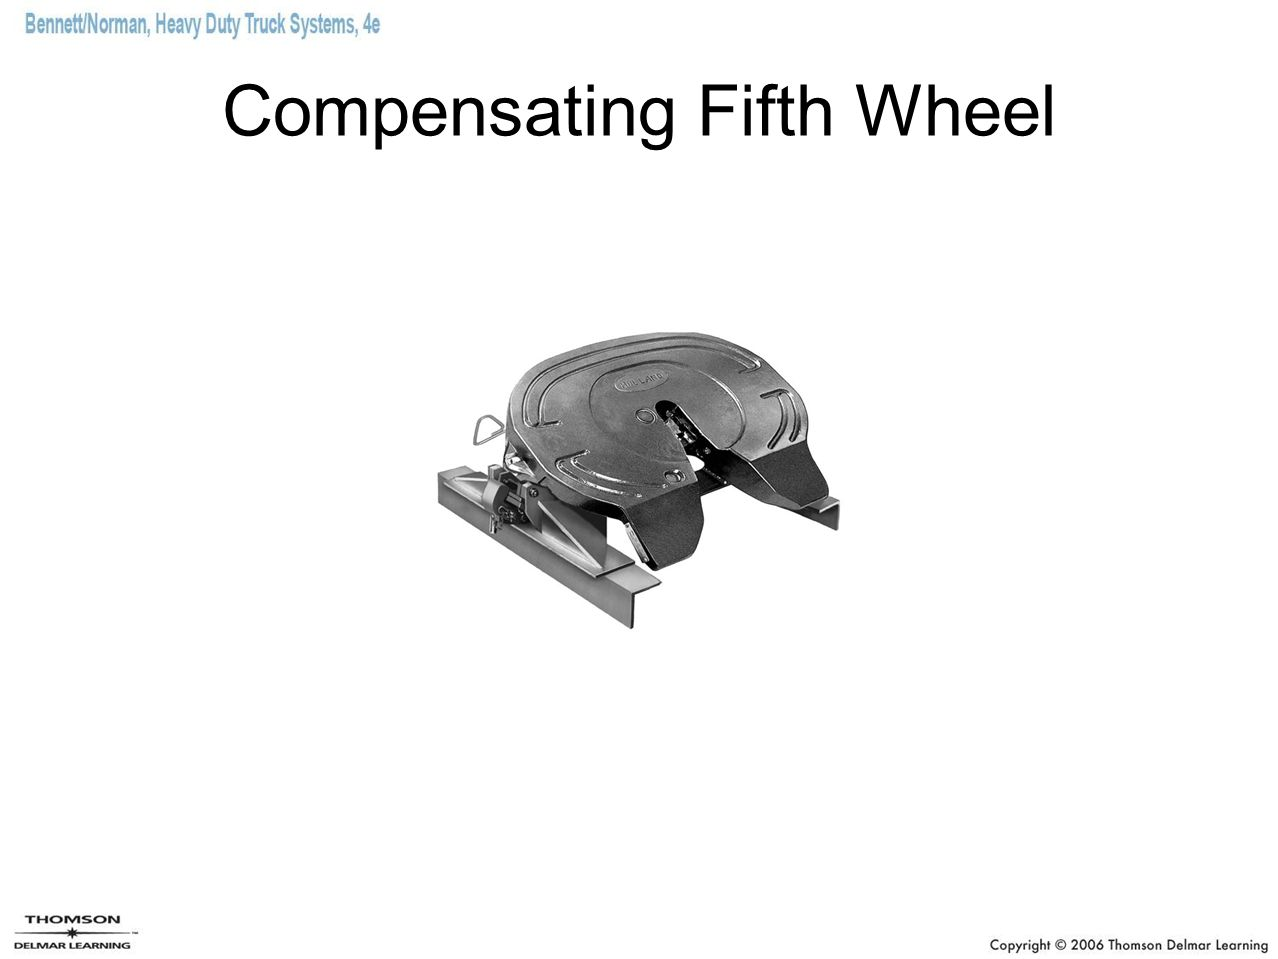 Compensating Fifth Wheel